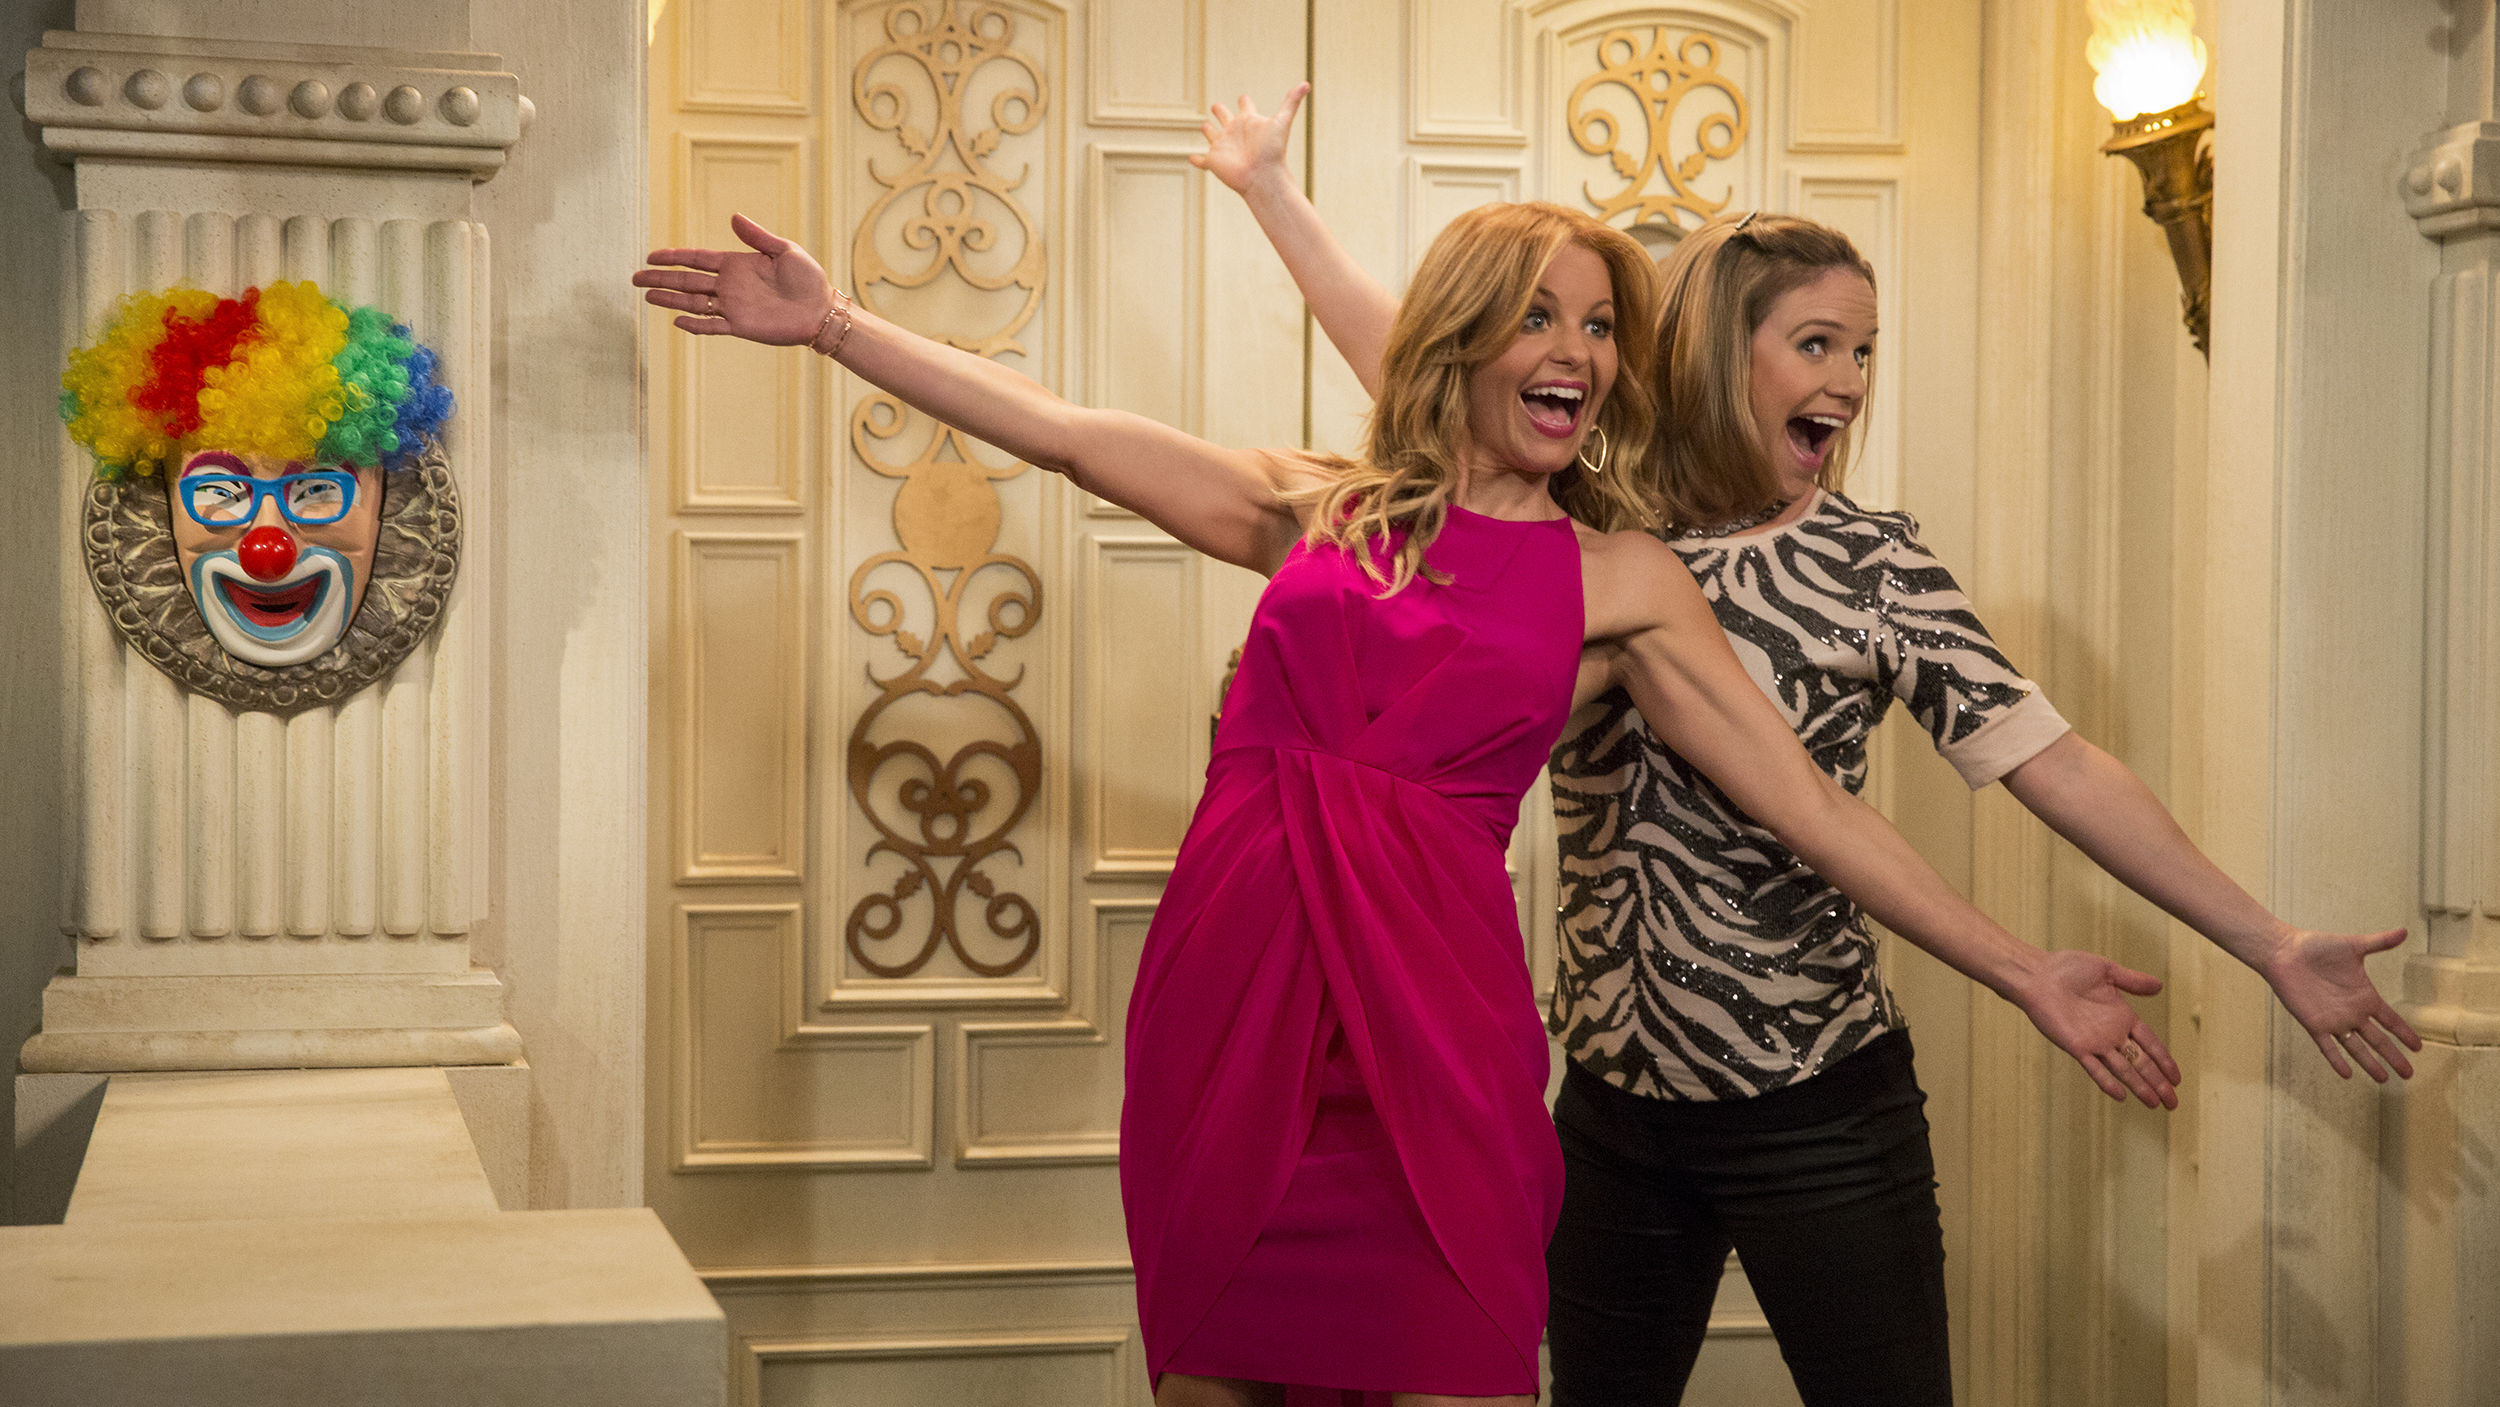 'Only took 30 years': See how 'Fuller House' cast reacted to Emmy nomination